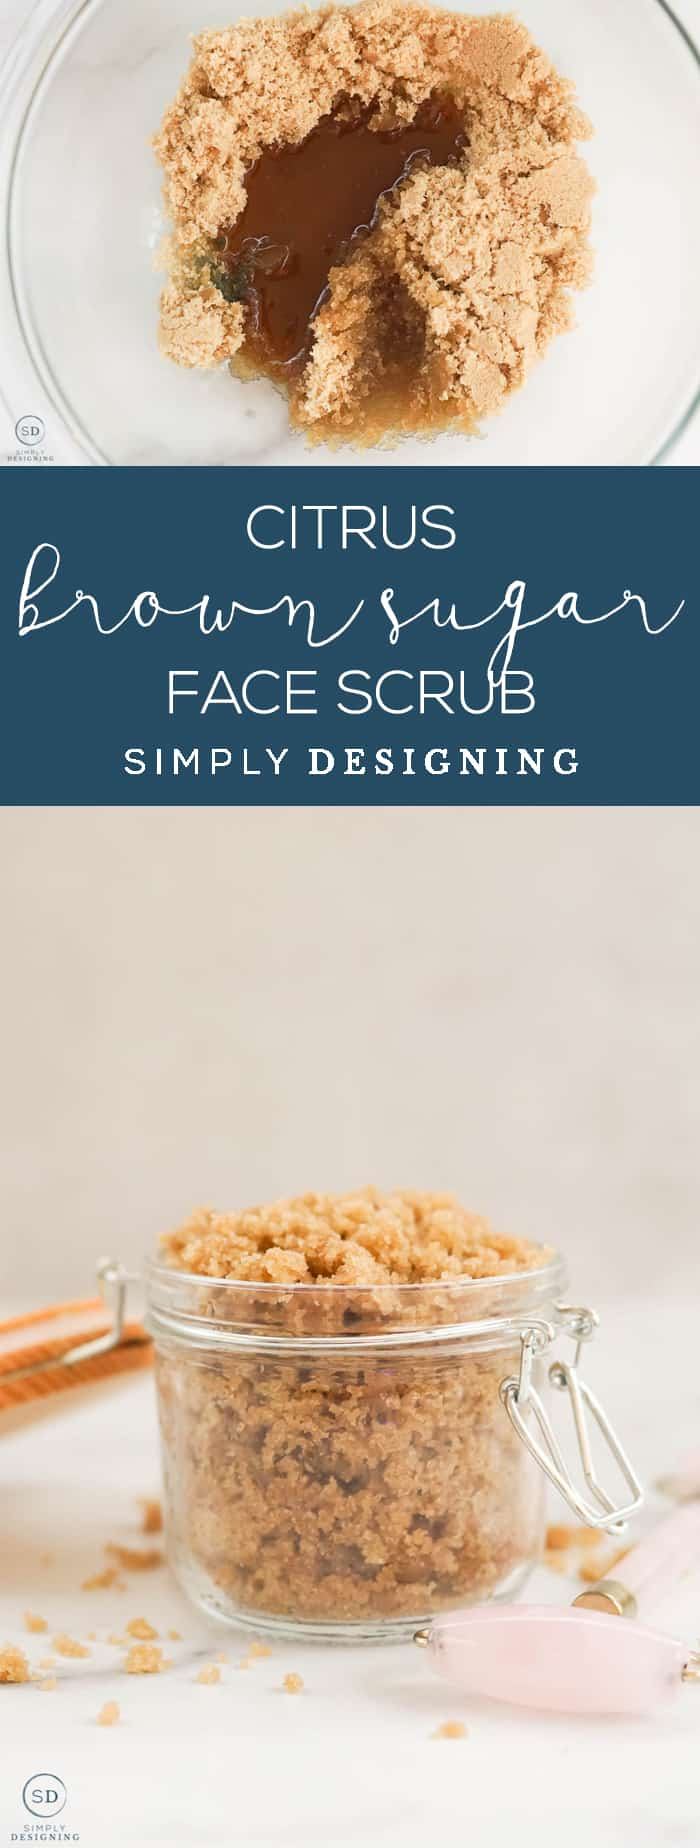 This citrus brown sugar face scrub is an all-natural way to exfoliate your face